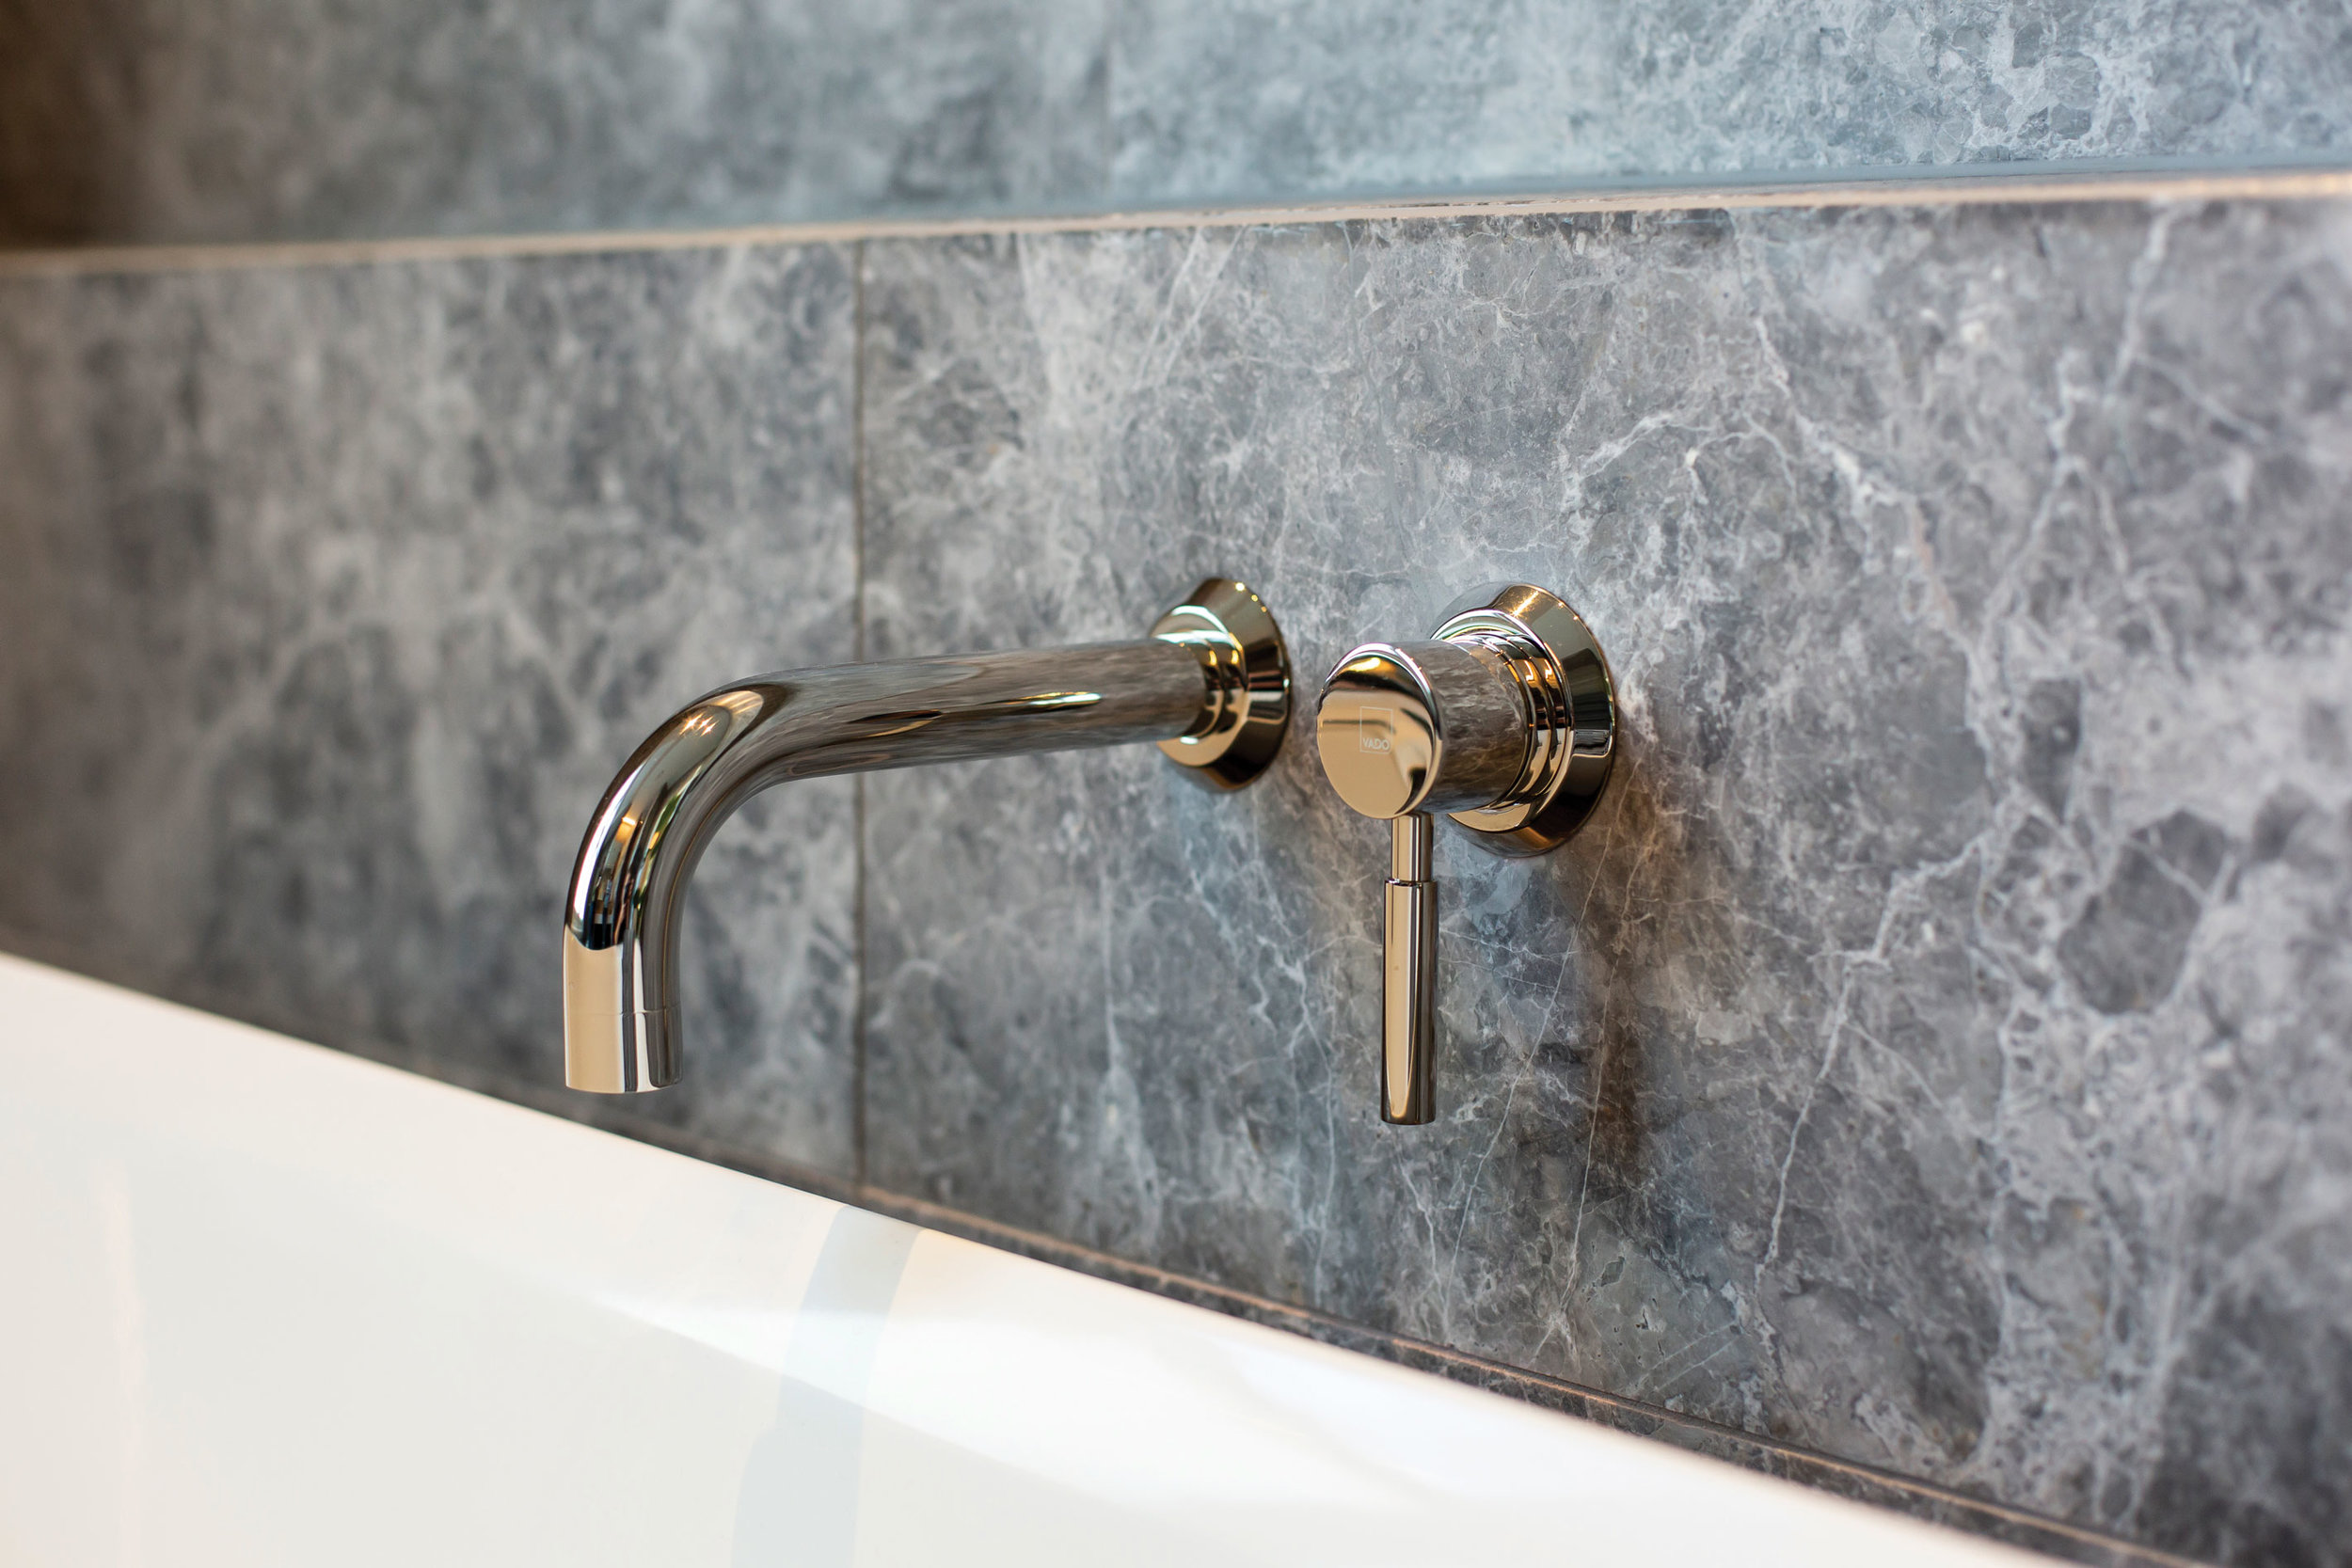 Tapware Working with the expert help of the team from Oakleys Plumbing Supplies, the owners chose stunning tapware from the Vado Origins range by Robertsons Bathware. The warmth of the brushed nickle finish beautifully accents the grey stone interior.